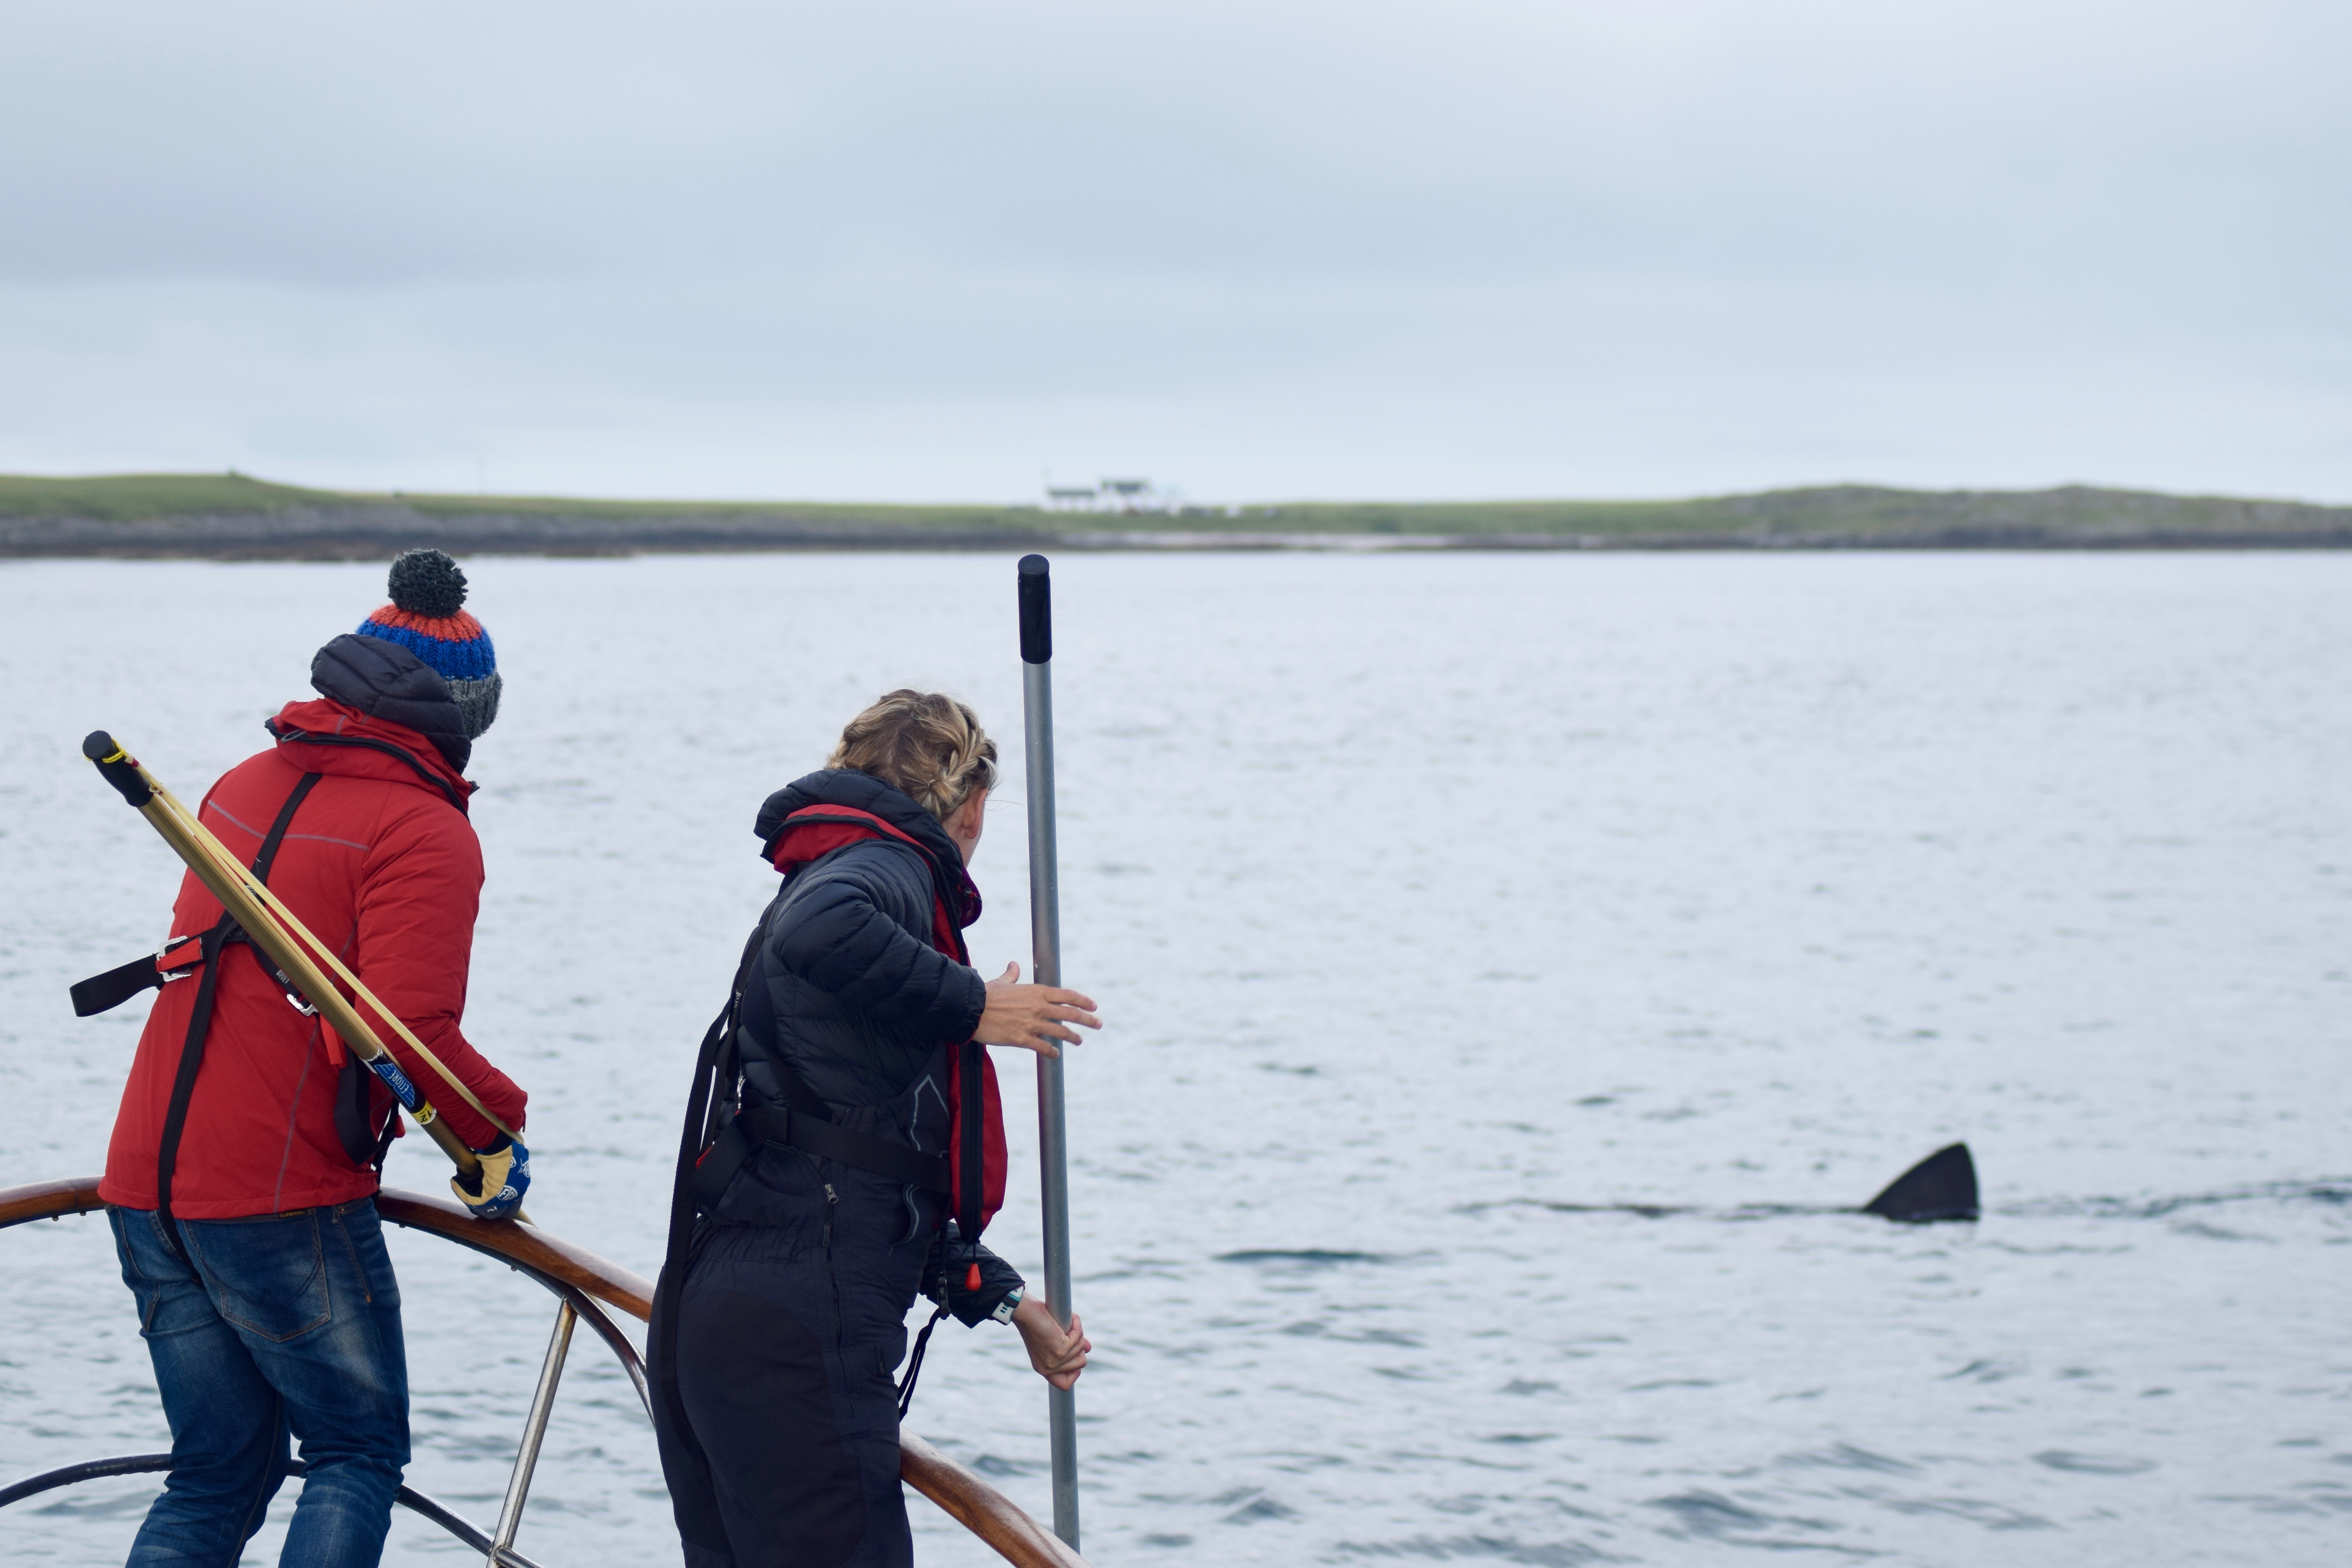 Scientists use long poles to attach tracking tags to basking sharks off the coast of Scotland. (Photo: Owen Exeter)